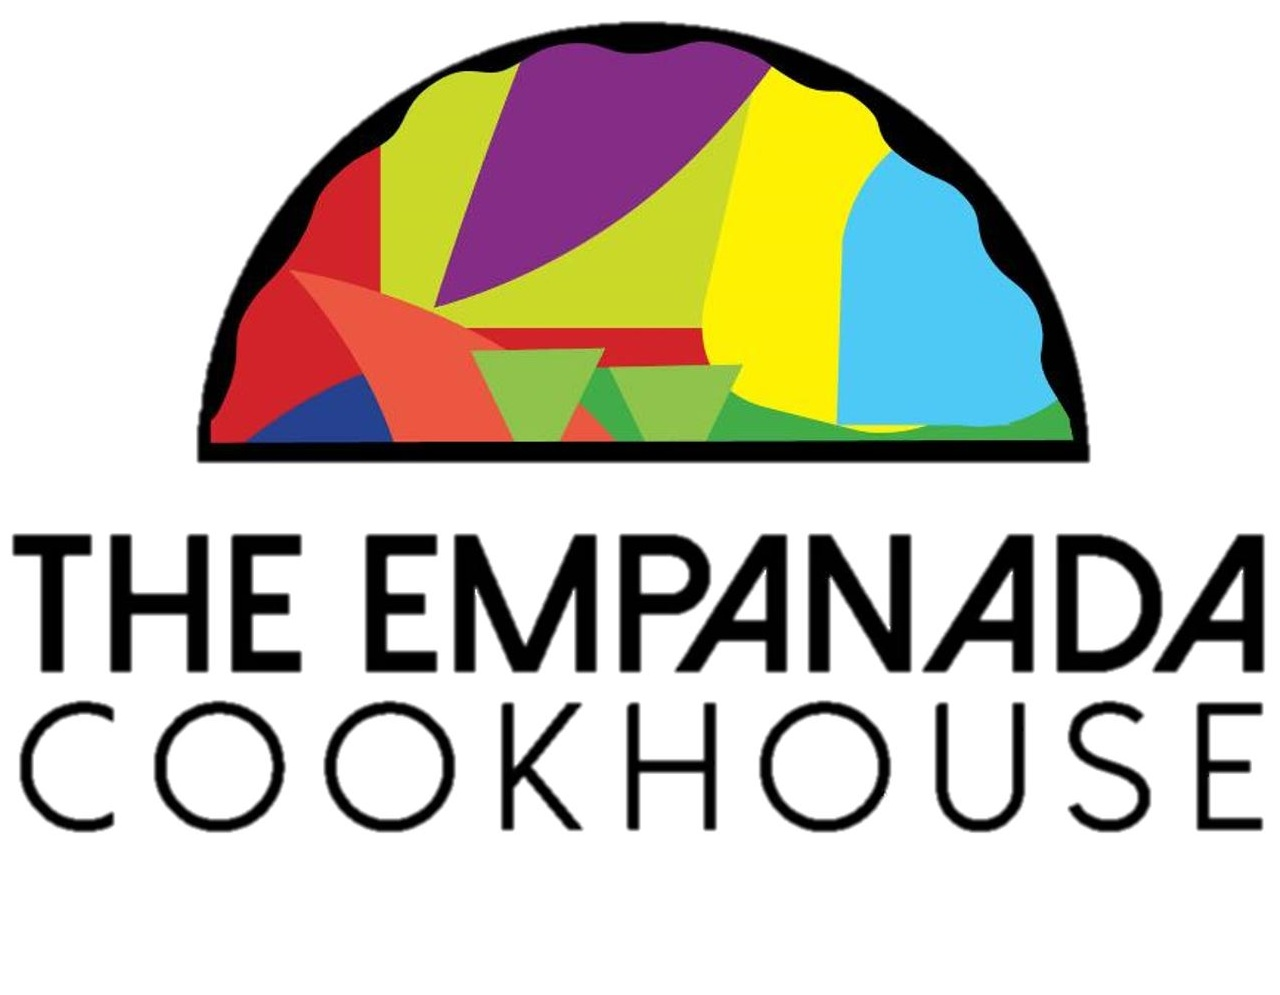 The Empanada CookHouse